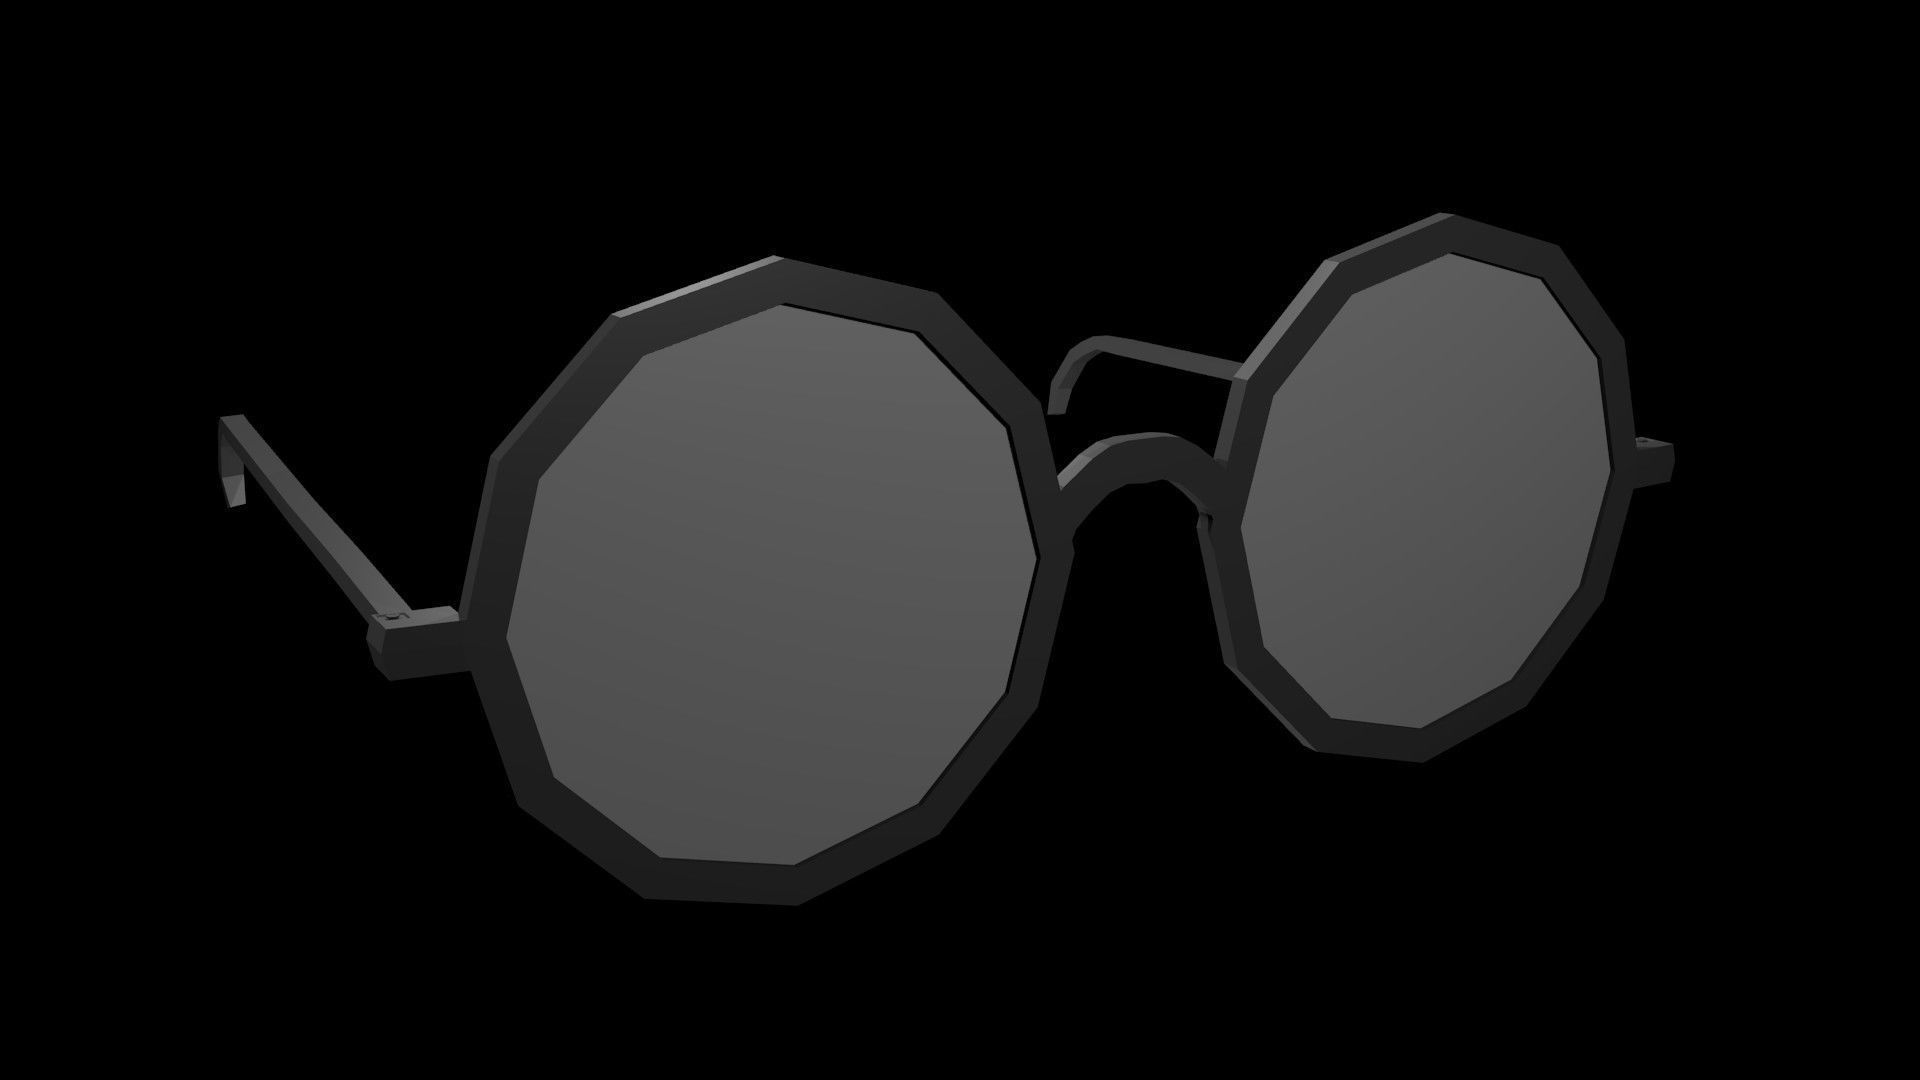 Low poly spectacles